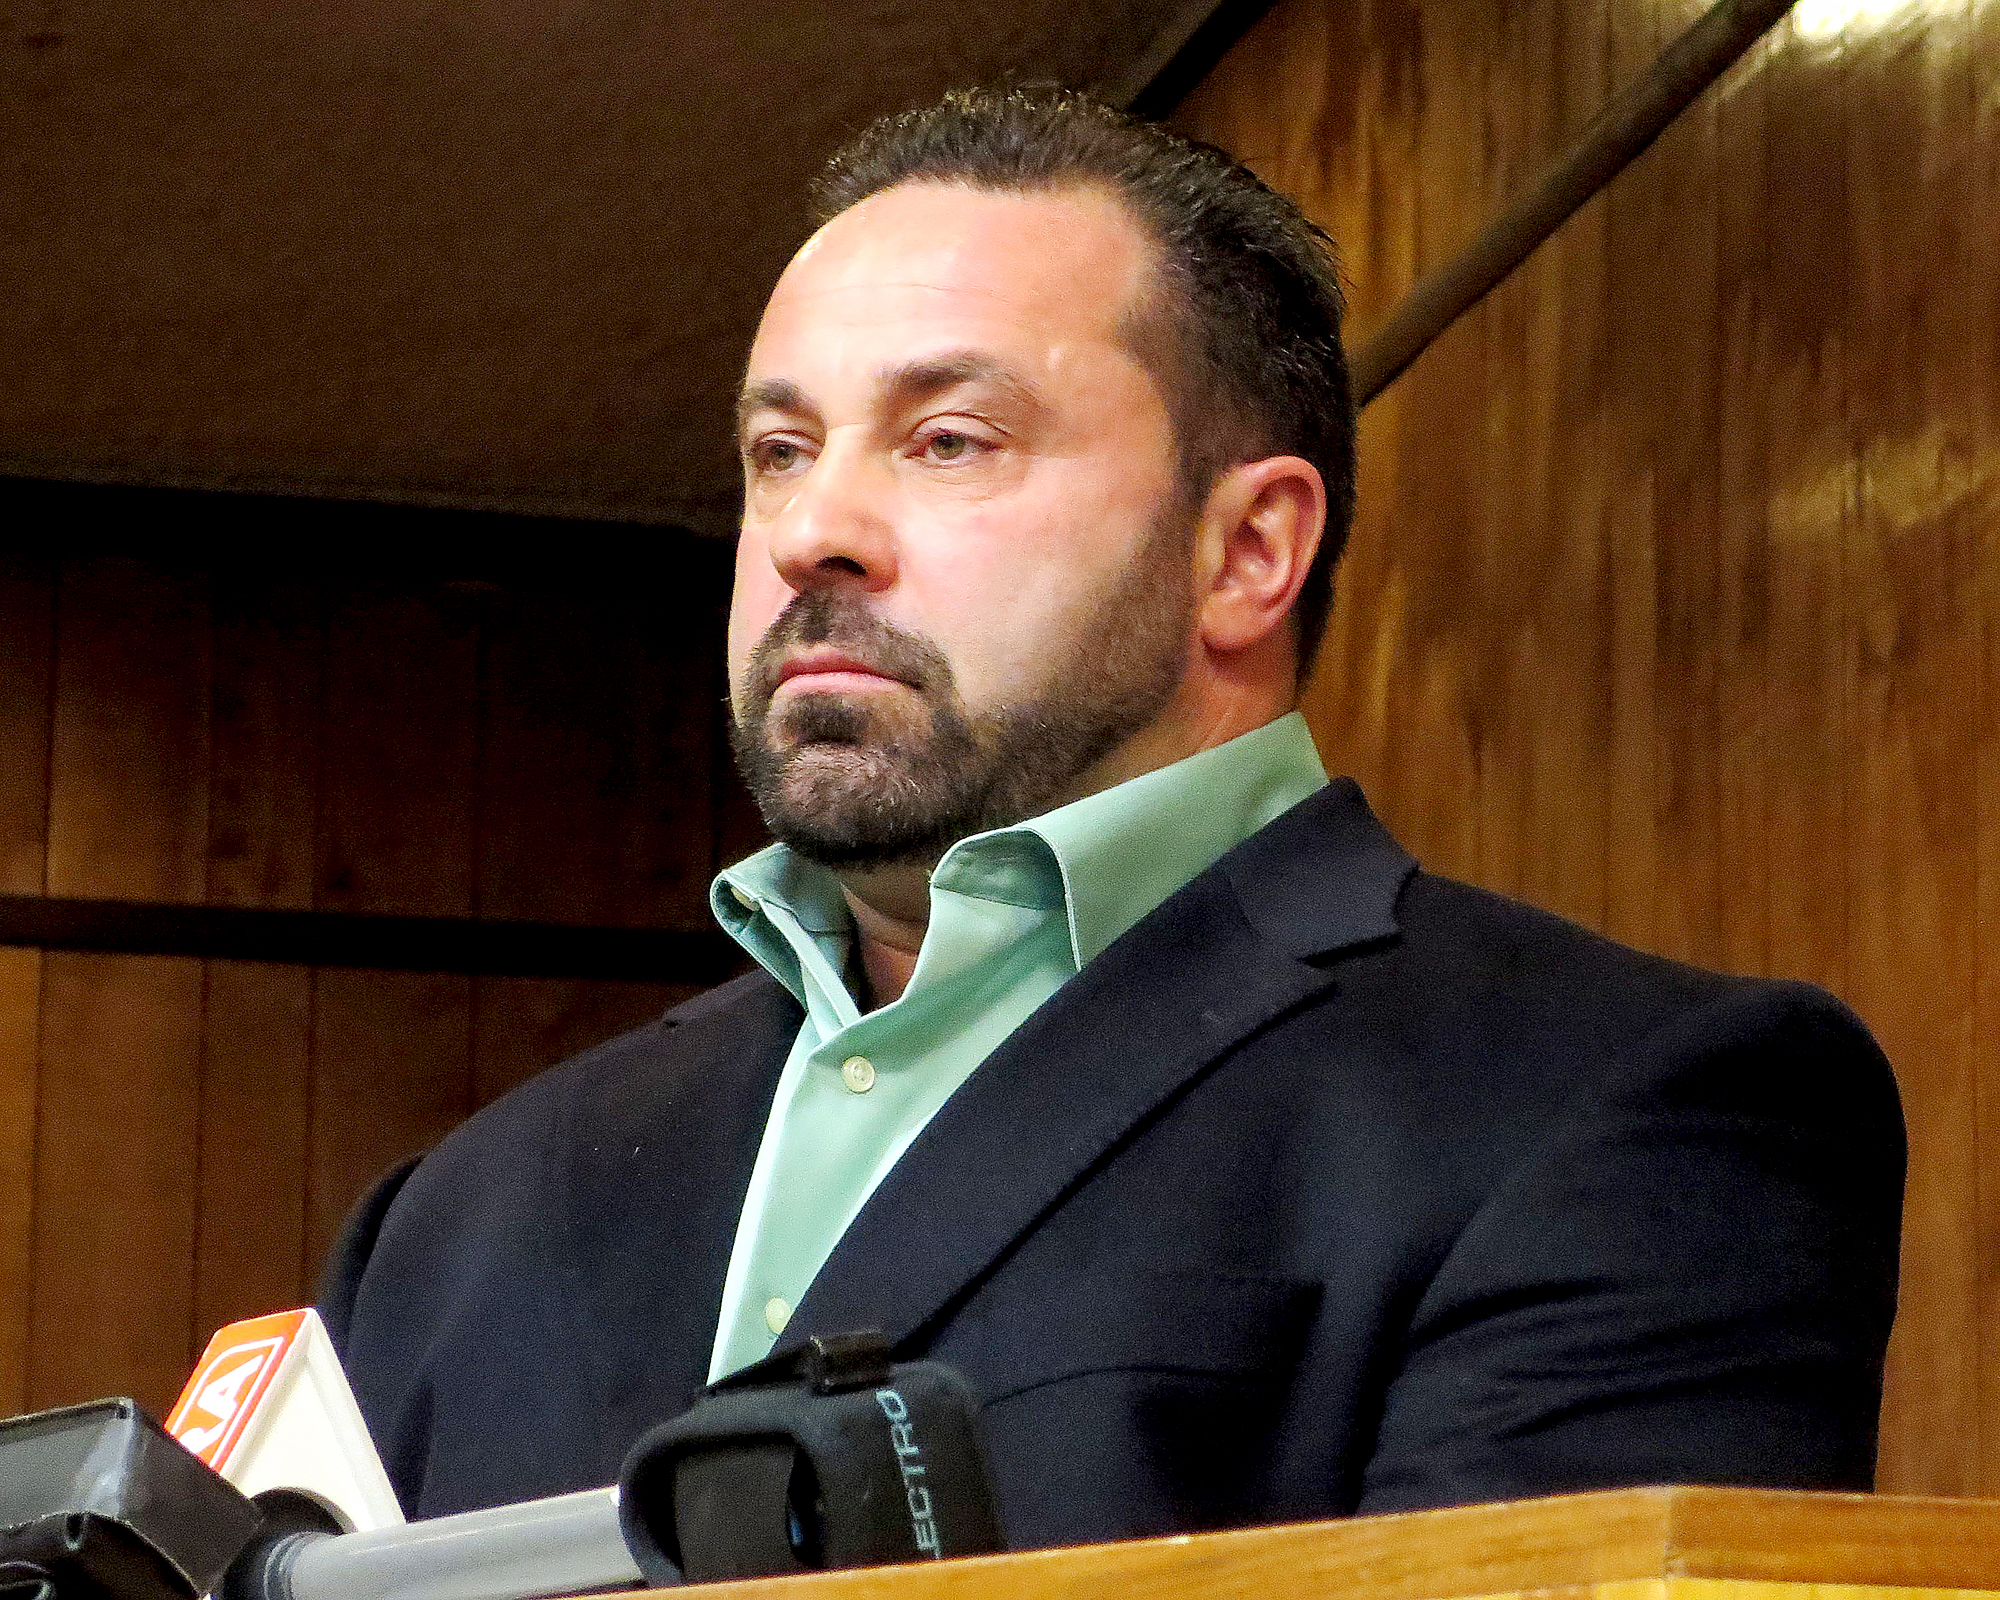 Joe-Giudice-Looks-Totally-Different-in-First-Photo-Since-ICE-Release-2